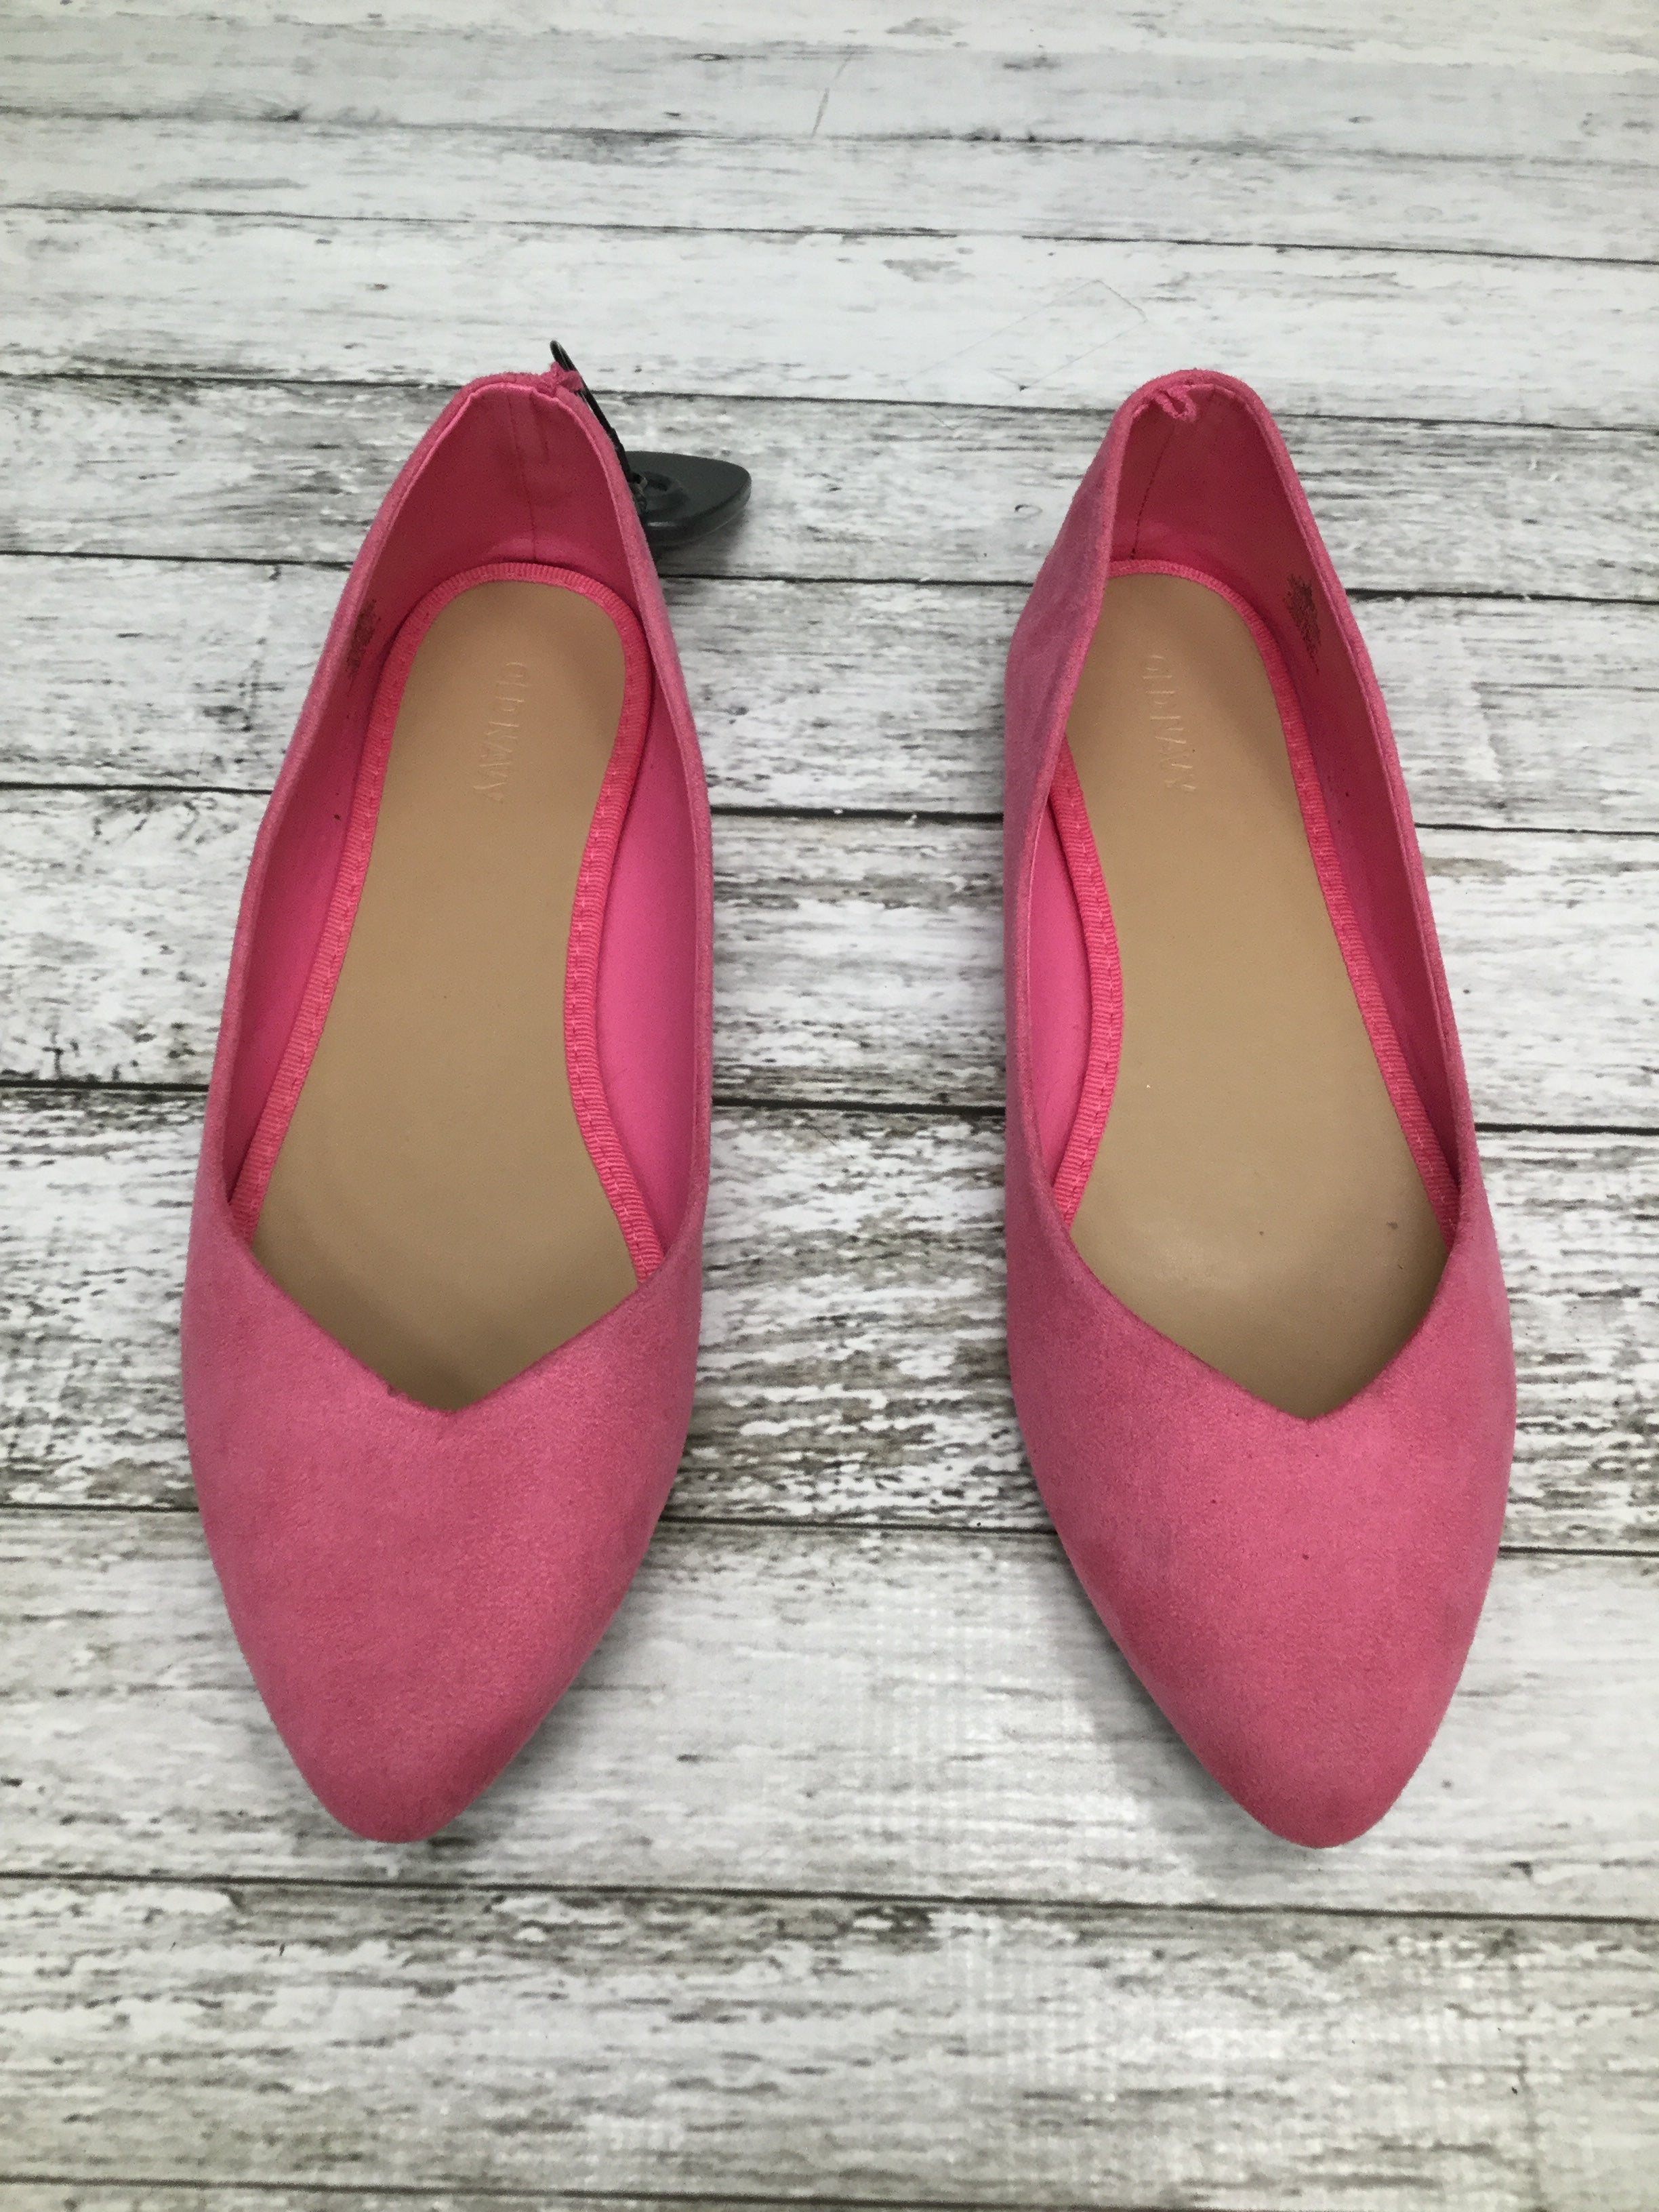 Primary Photo - BRAND: OLD NAVY , STYLE: SHOES FLATS , COLOR: PINK , SIZE: 9 , SKU: 105-4940-866